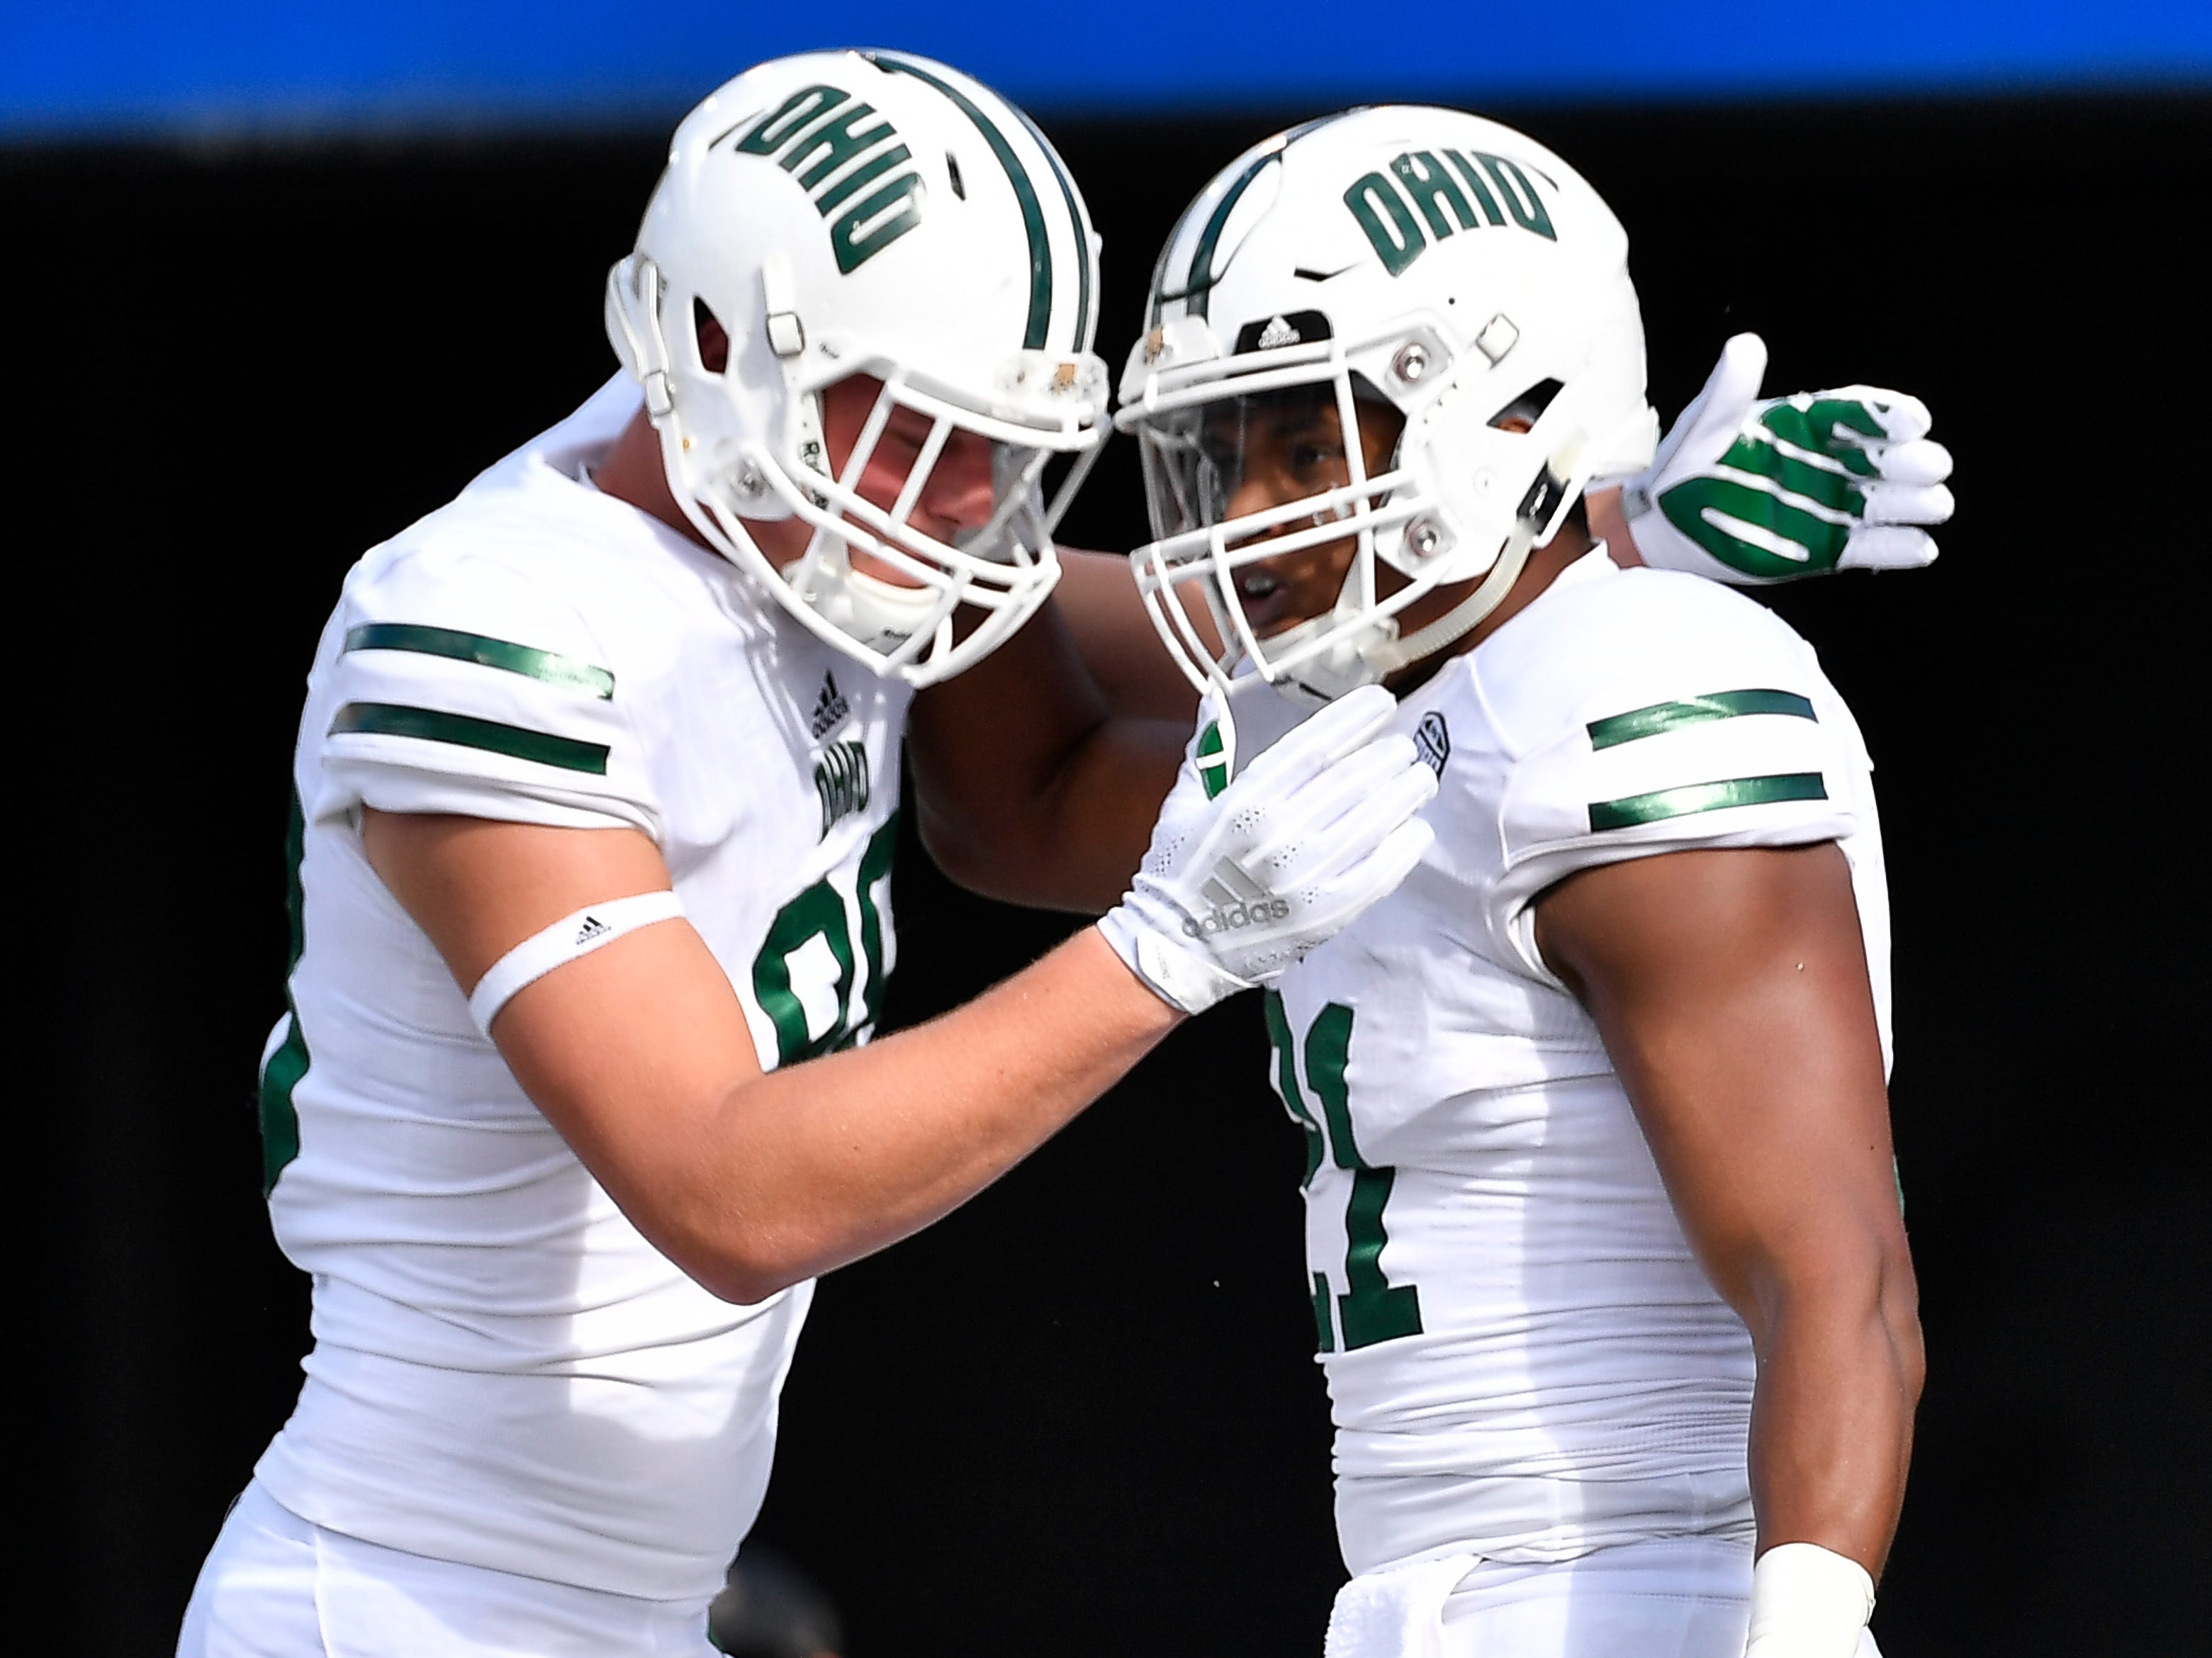 Ohio tight end Ryan Luehrman (88) congratulates running back Maleek Irons (21) after his touchdown against Virginia at Vanderbilt Stadium Saturday, Sept. 15, 2018, in Nashville, Tenn.